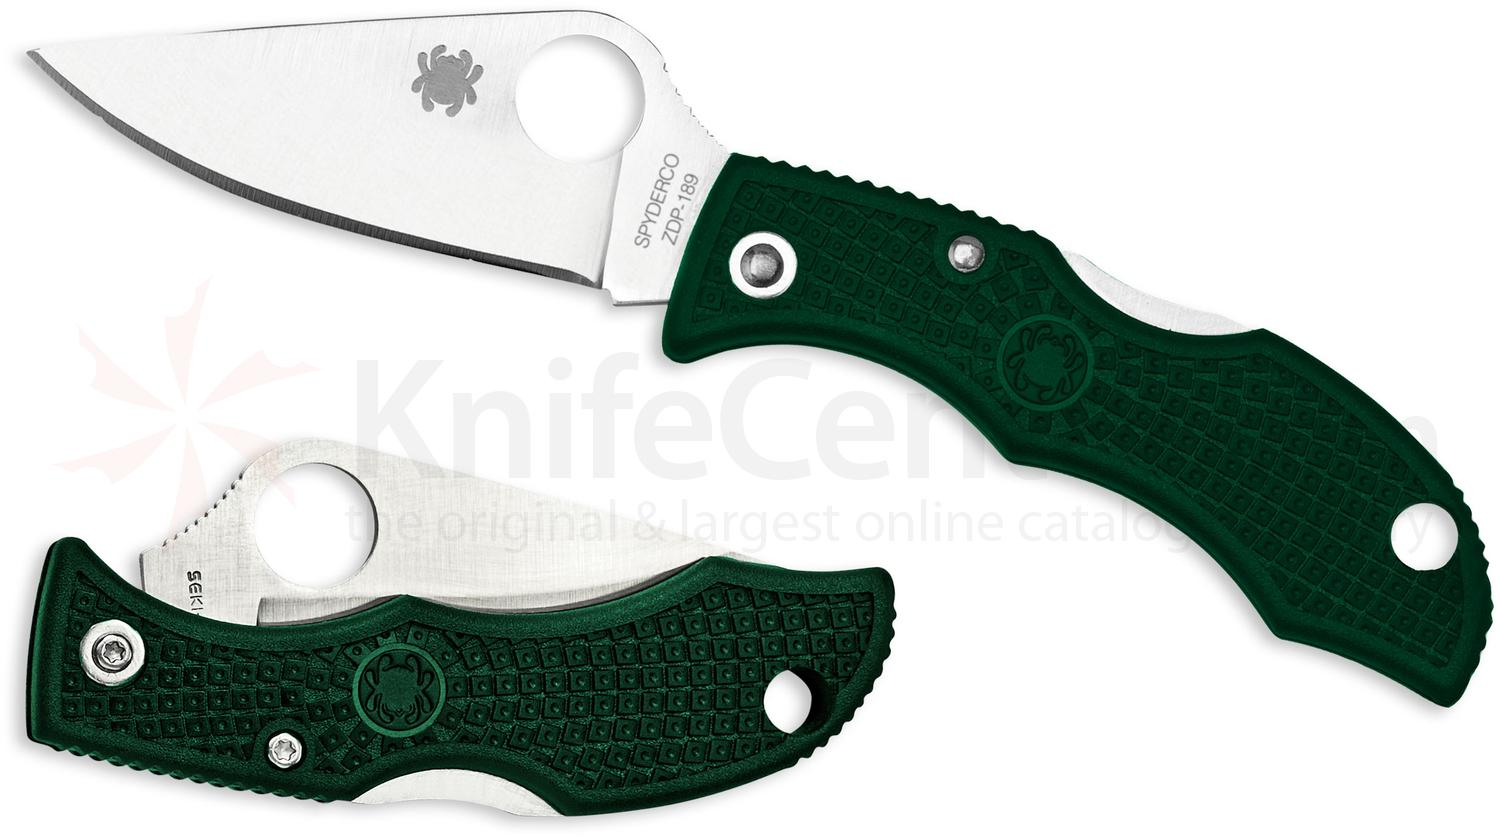 Spyderco LGREP3 Ladybug 3 Key Ring Knife 1-15/16 inch ZDP-189 Satin Plain Blade, Green FRN Handles